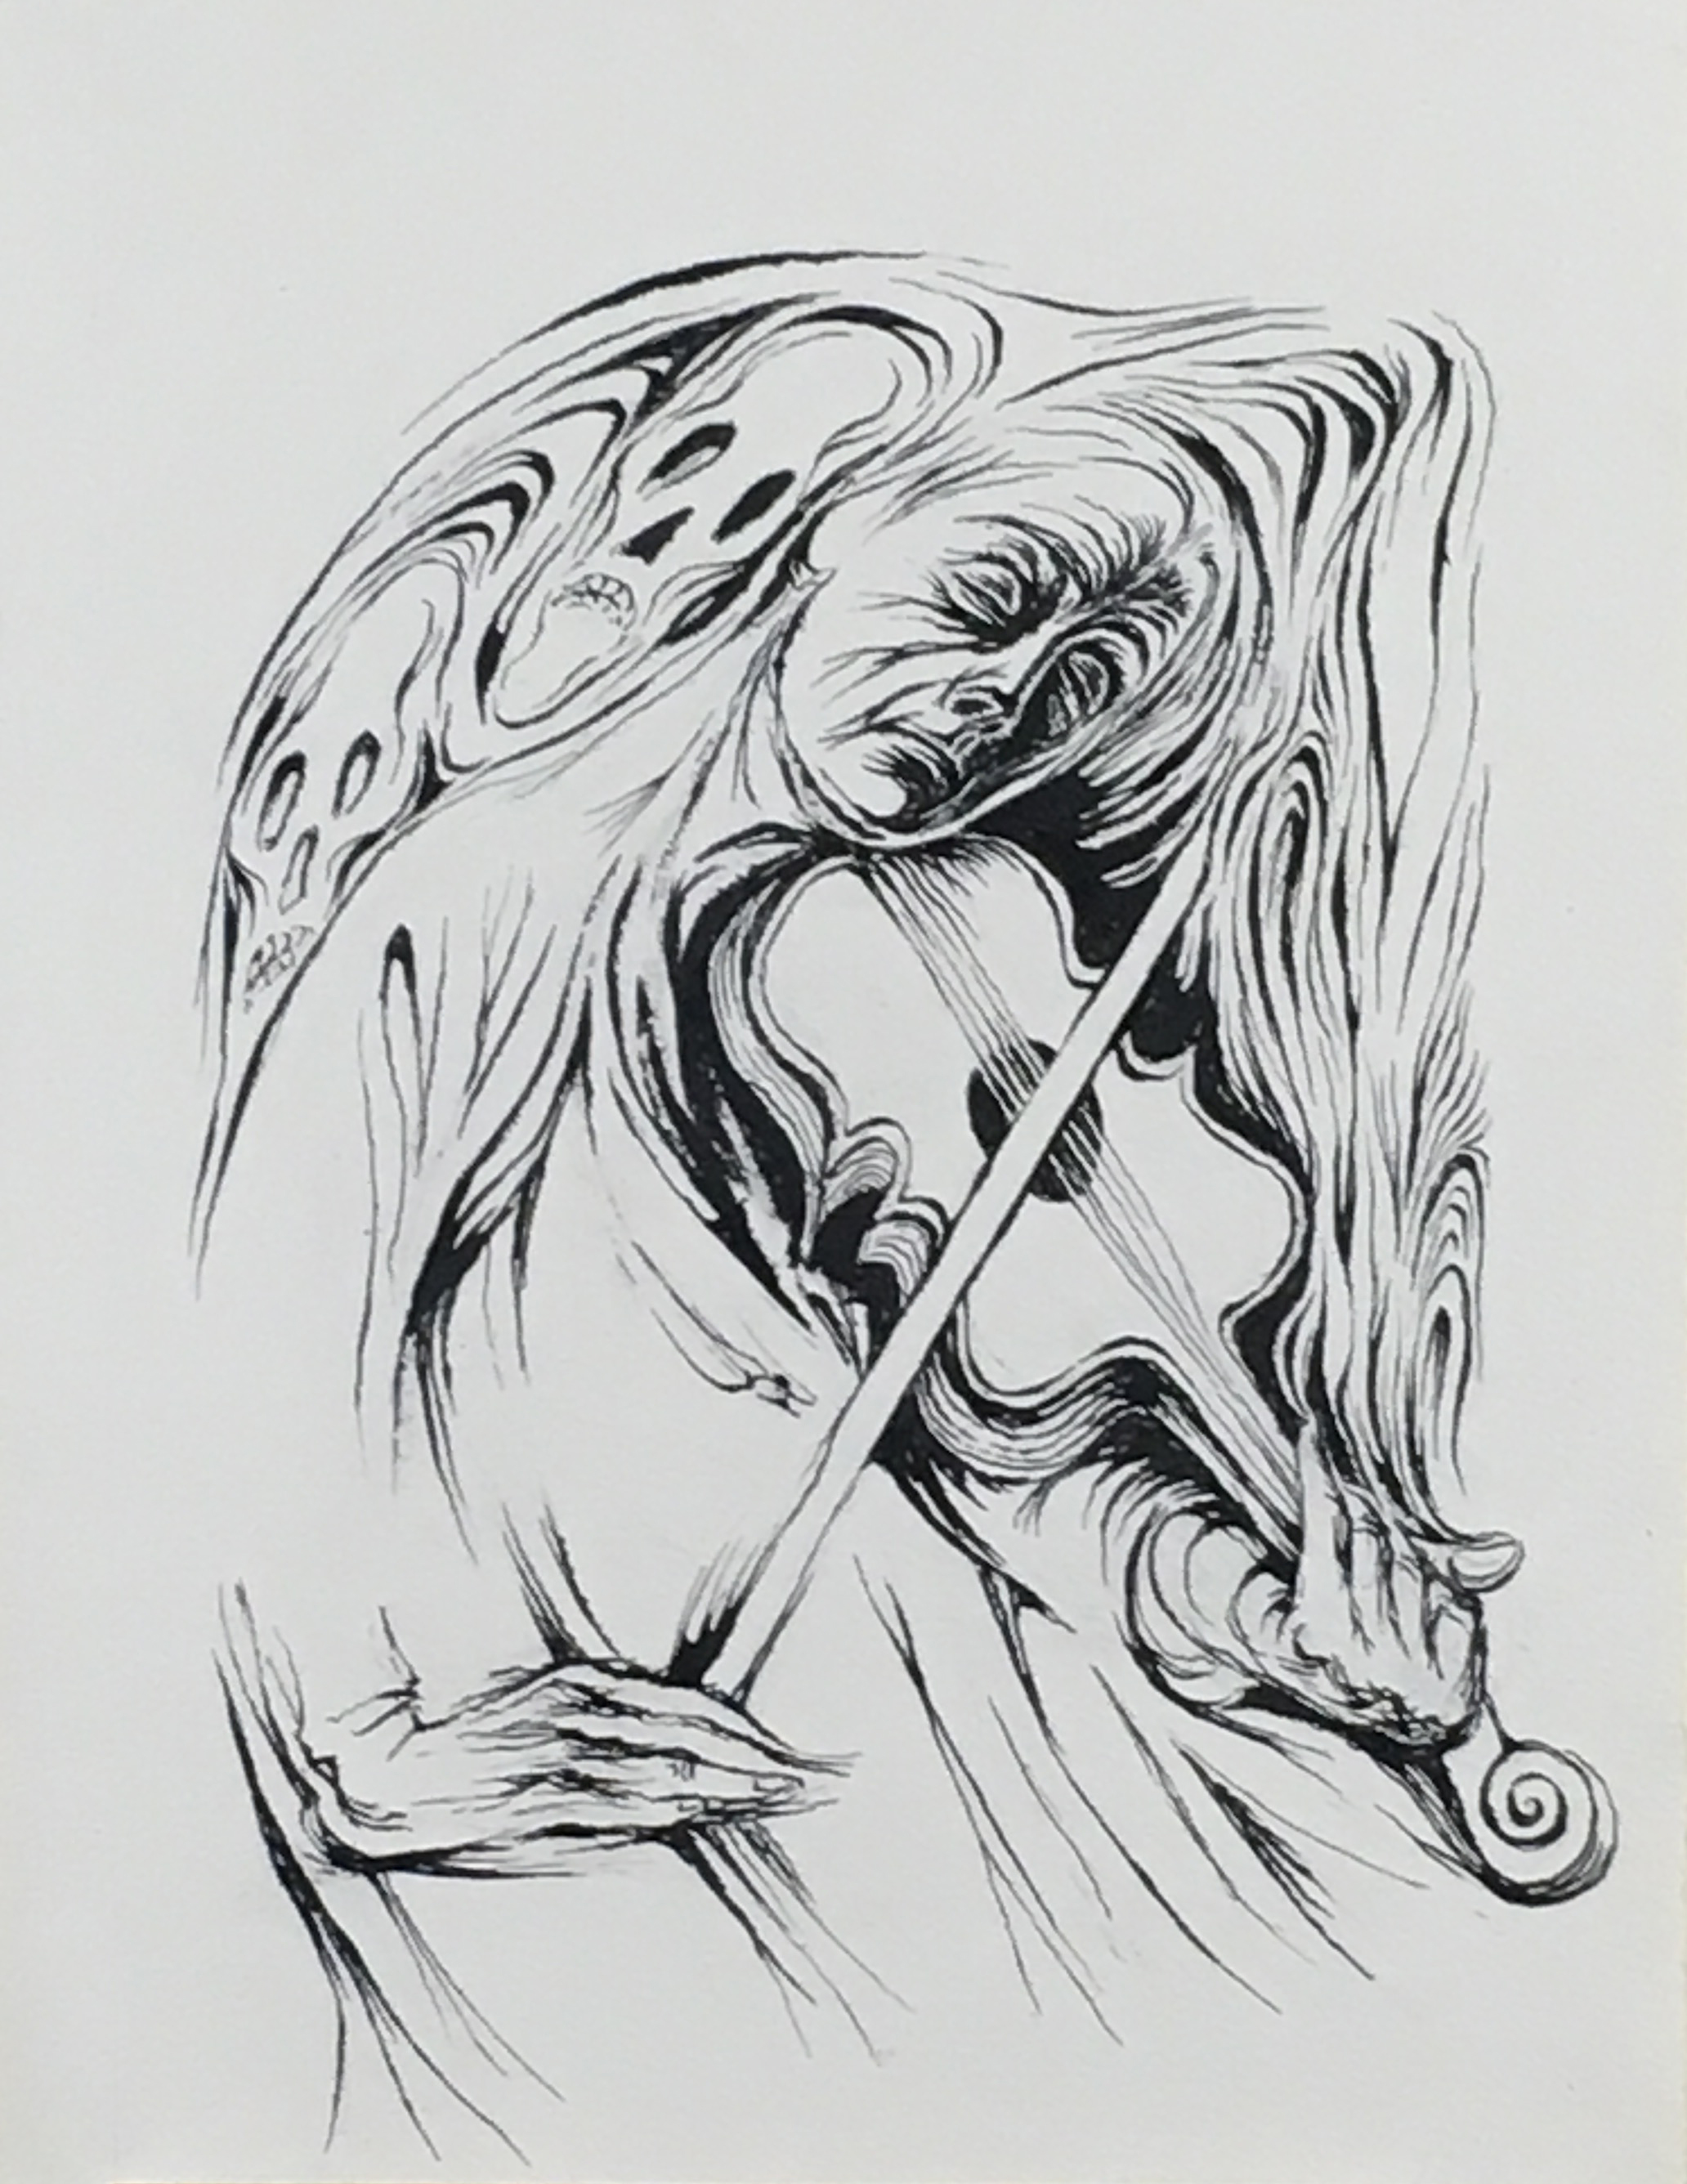 The Wonderful Musician,  1970-71 ink on paper, 16 x 12 inches